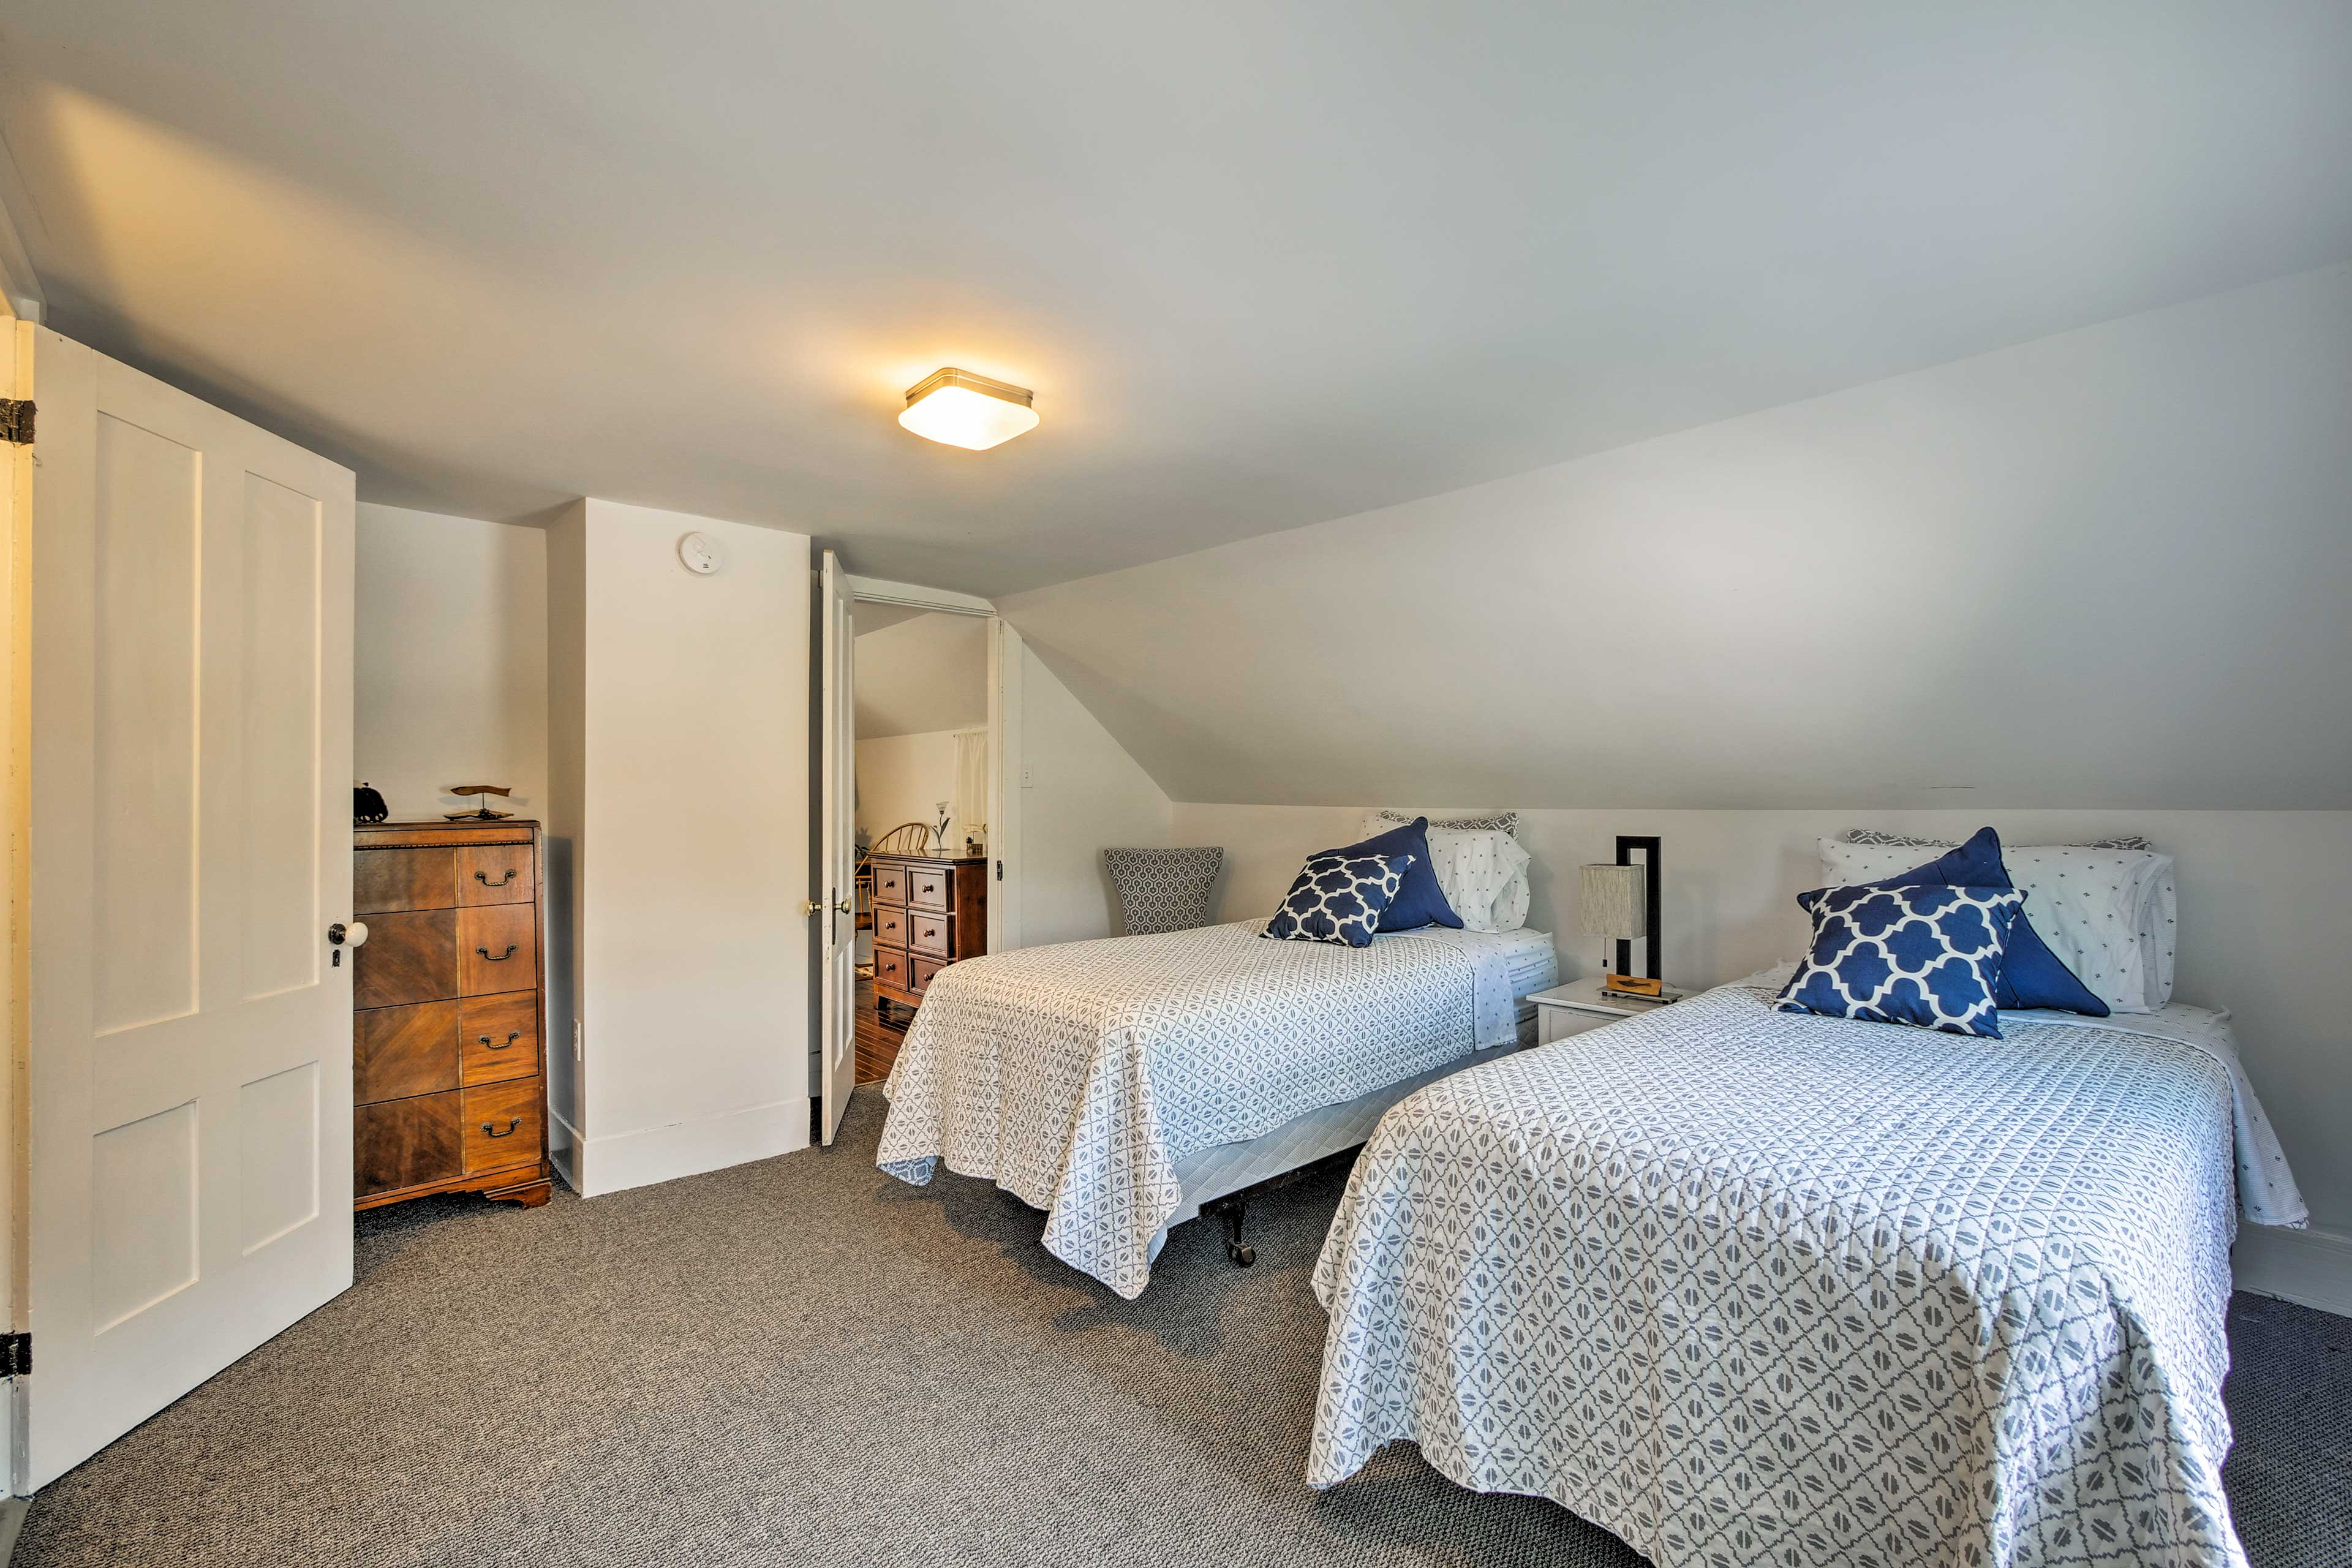 The third bedroom features a set of twin beds.